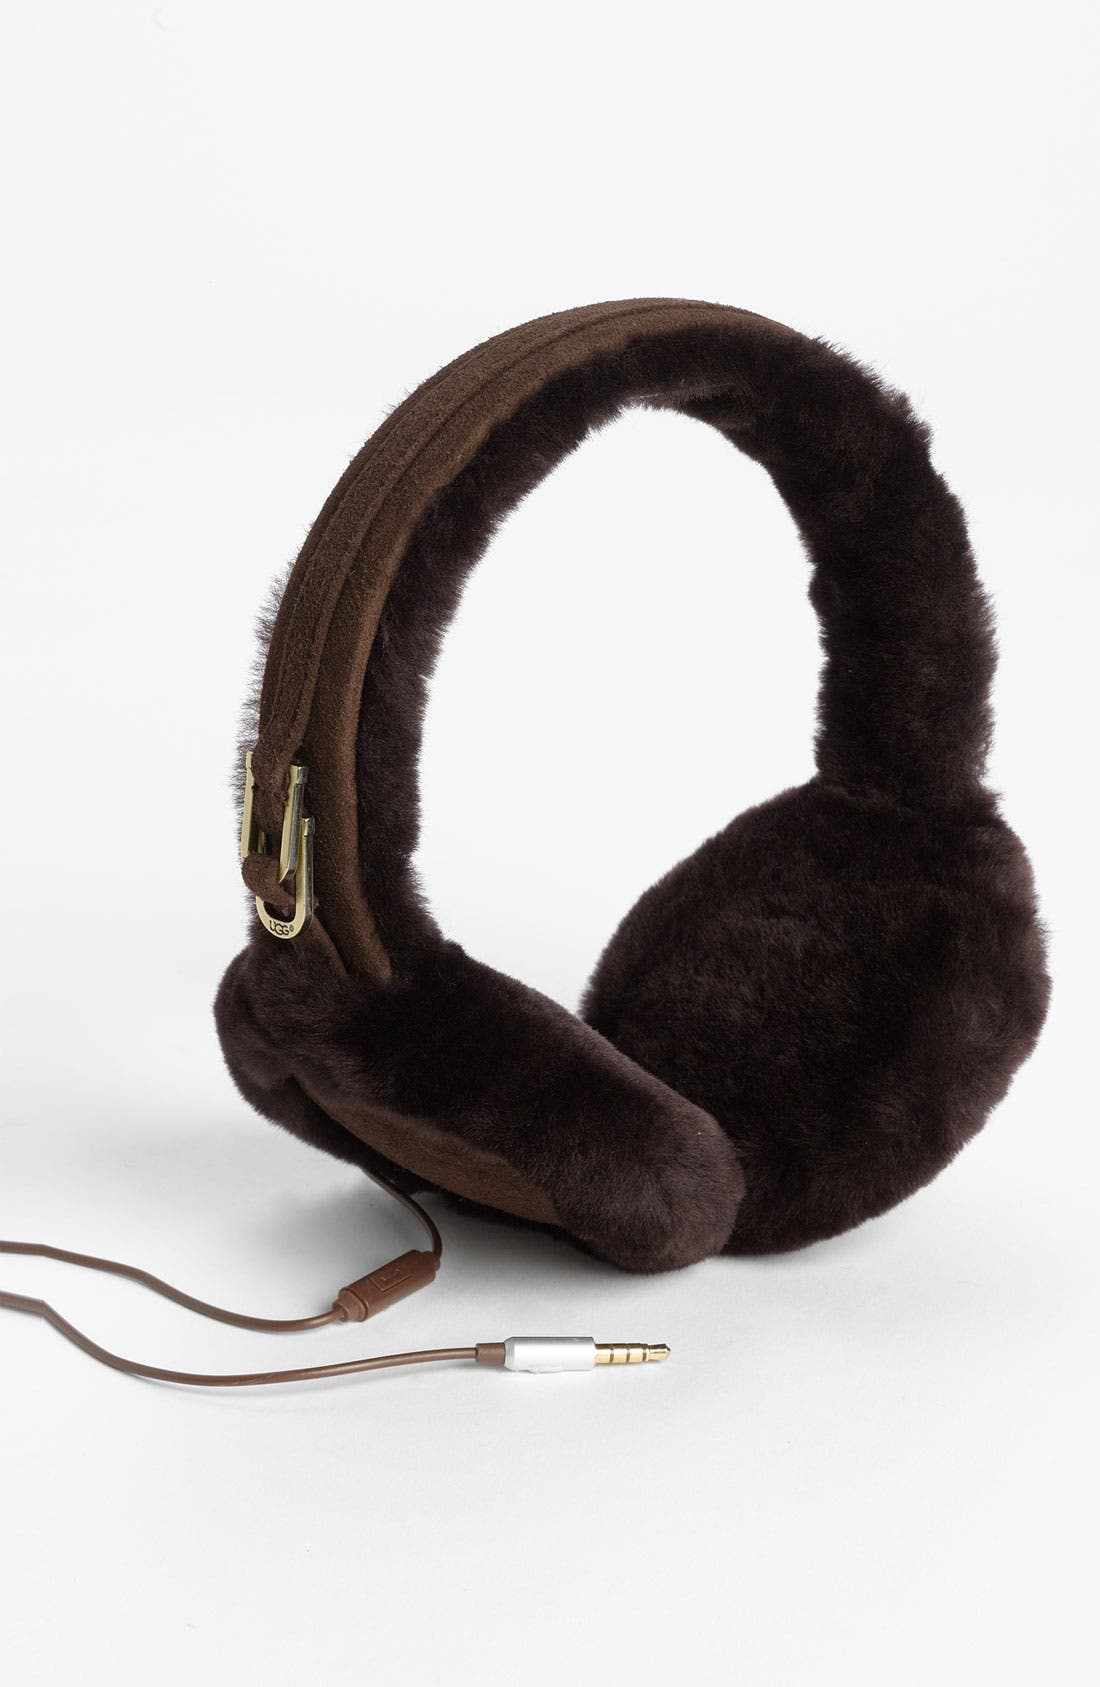 Australia Leather & Shearling Tech Earmuffs,                             Main thumbnail 1, color,                             Chocolate